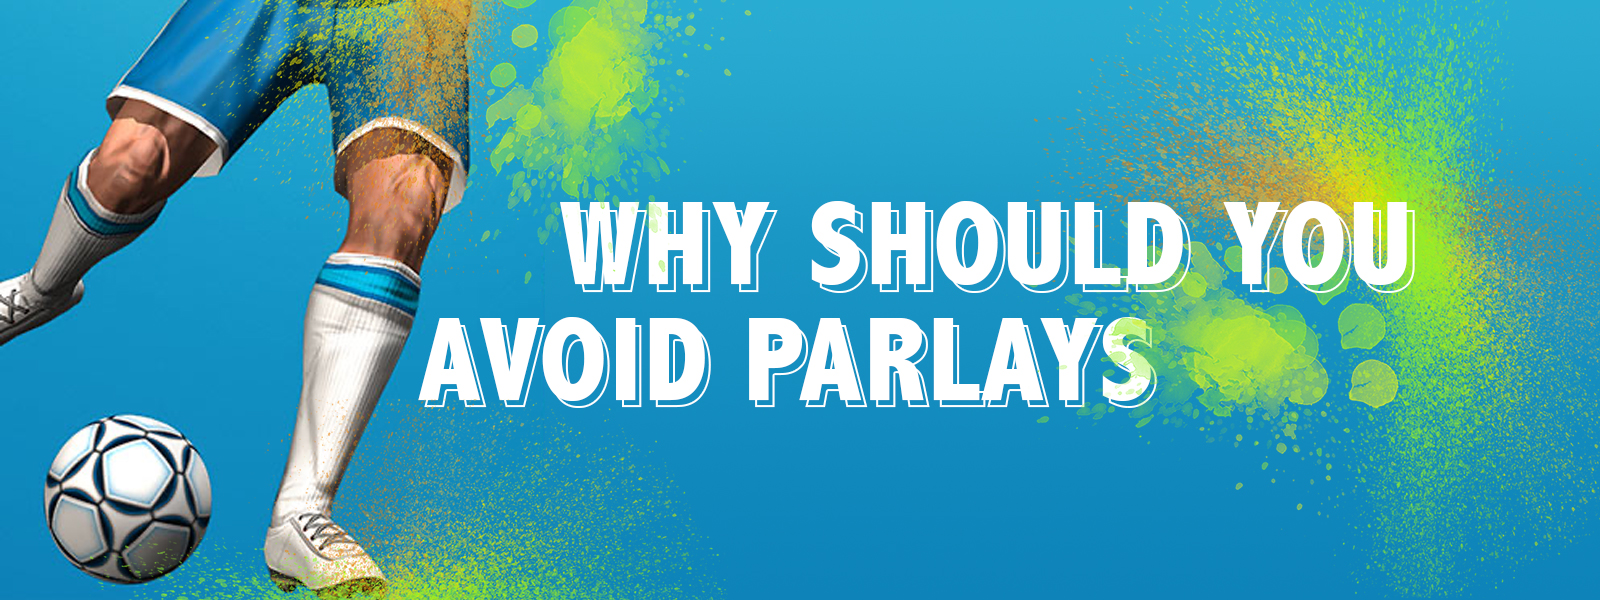 Learn Why Should You Avoid Parlays